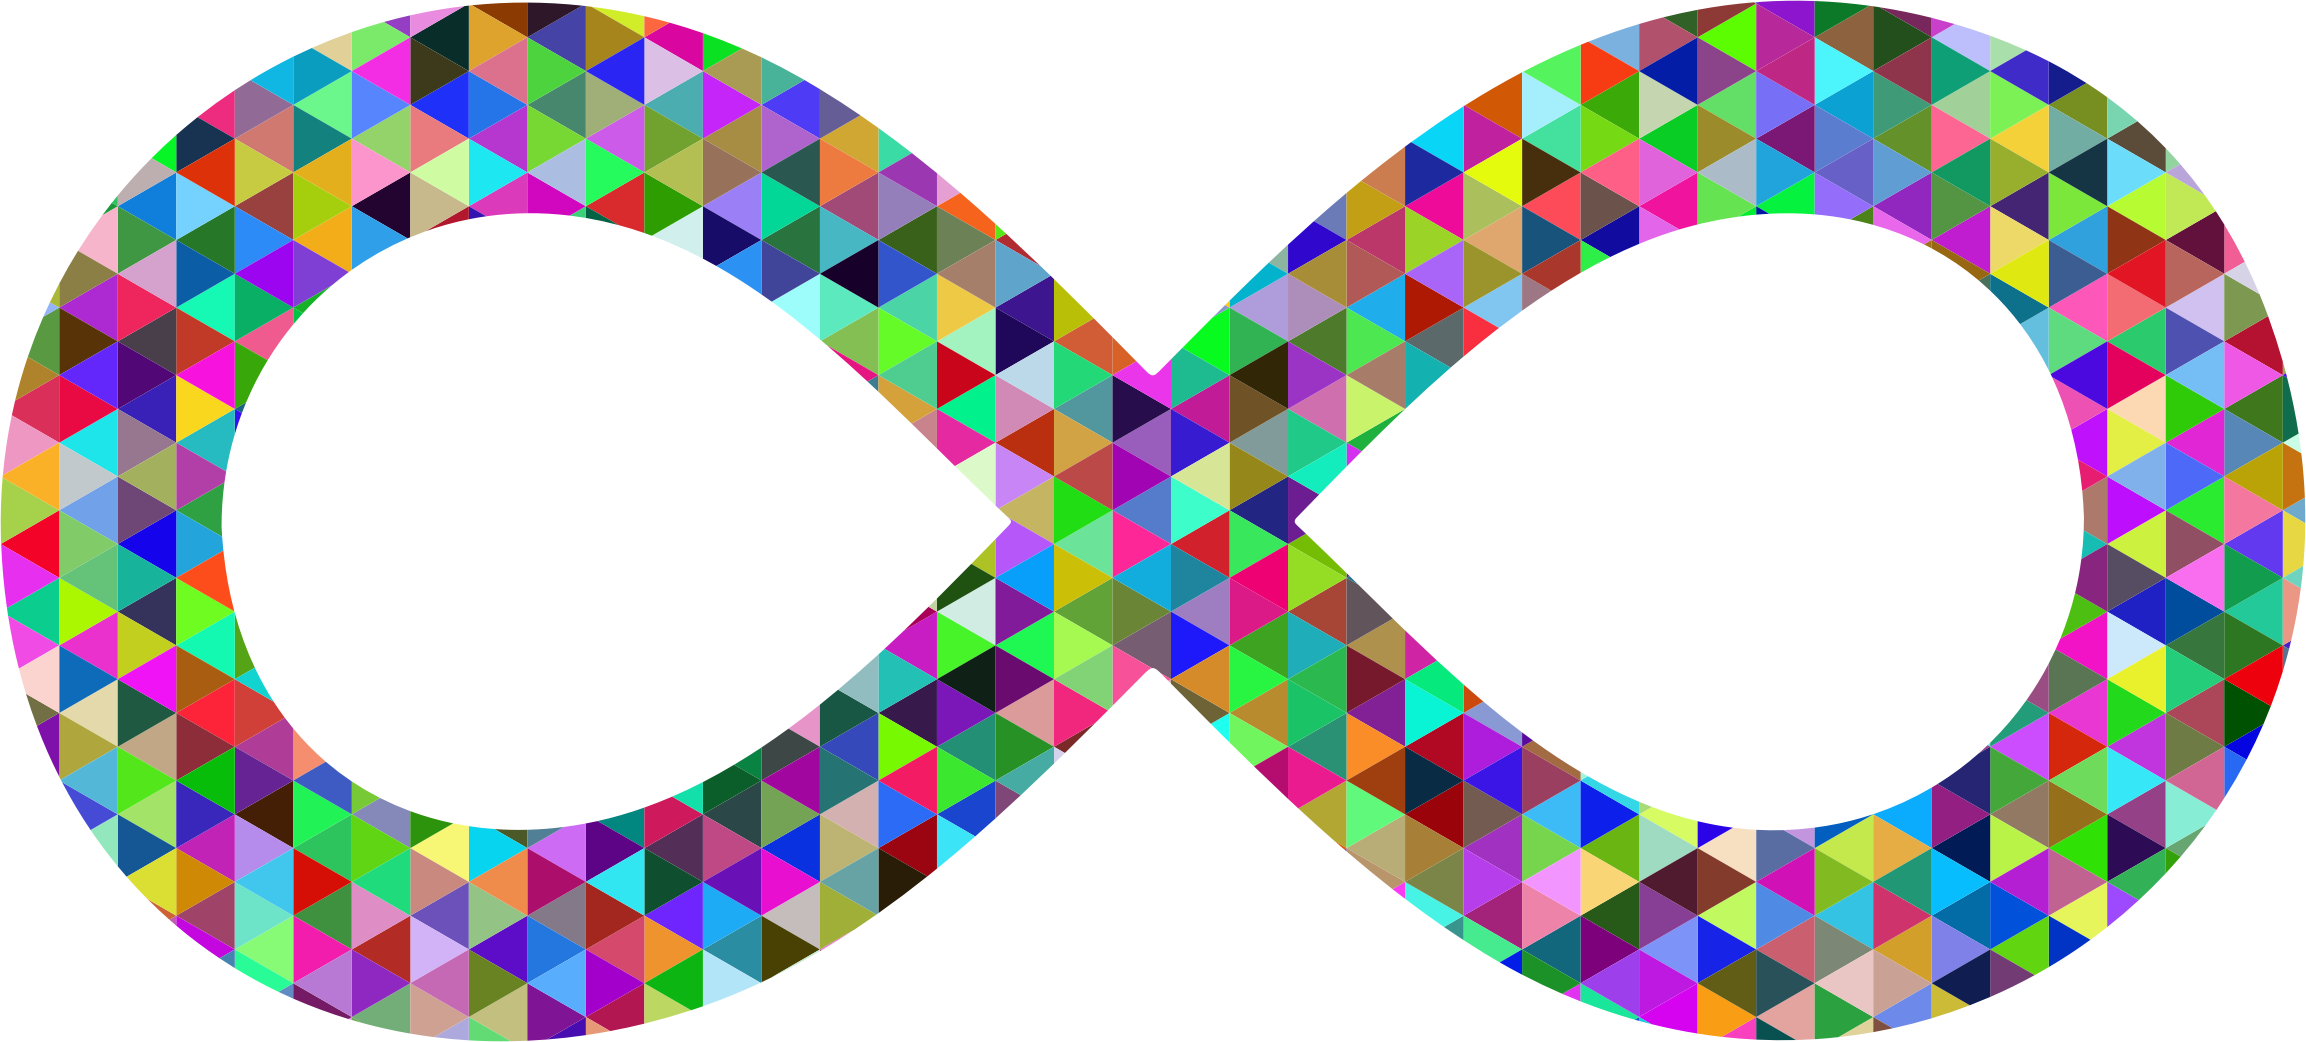 Infinity cross clipart vector royalty free 28+ Collection of Infinity Clipart Png | High quality, free cliparts ... vector royalty free